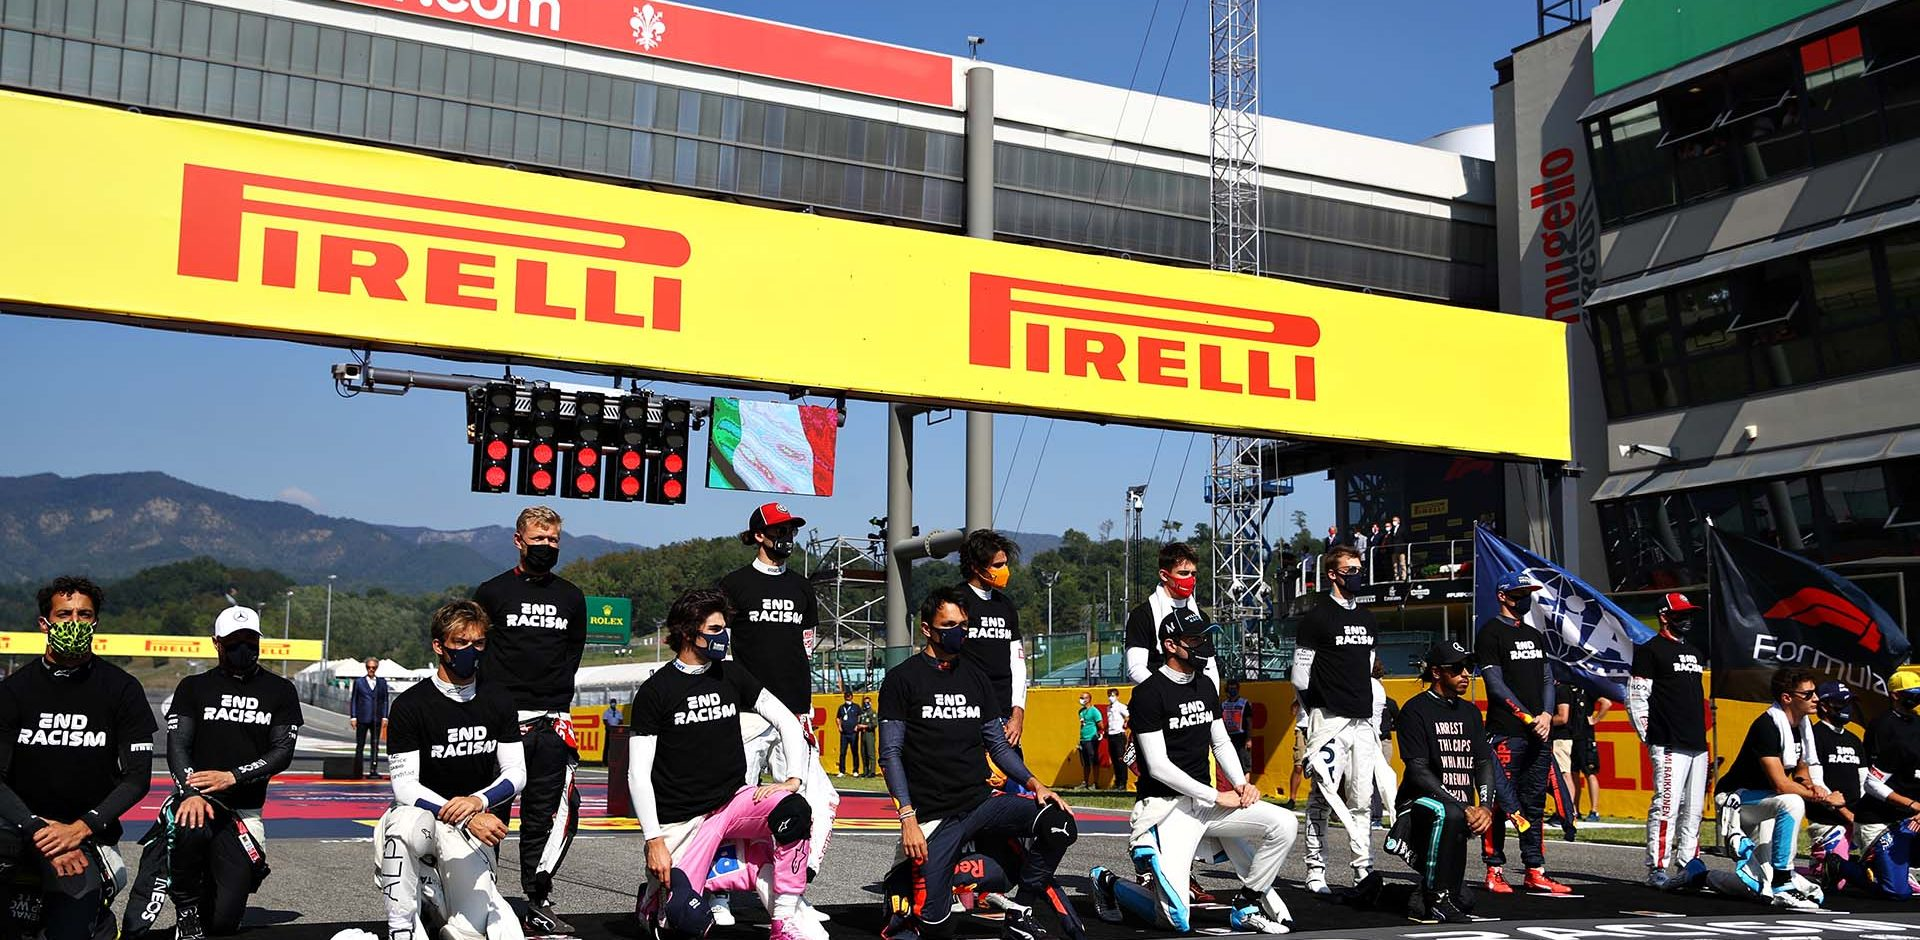 SCARPERIA, ITALY - SEPTEMBER 13: F1 drivers including Pierre Gasly of France and Scuderia AlphaTauri and Alexander Albon of Thailand and Red Bull Racing stand and kneel on the grid in support of ending racism before the F1 Grand Prix of Tuscany at Mugello Circuit on September 13, 2020 in Scarperia, Italy. (Photo by Mark Thompson/Getty Images)